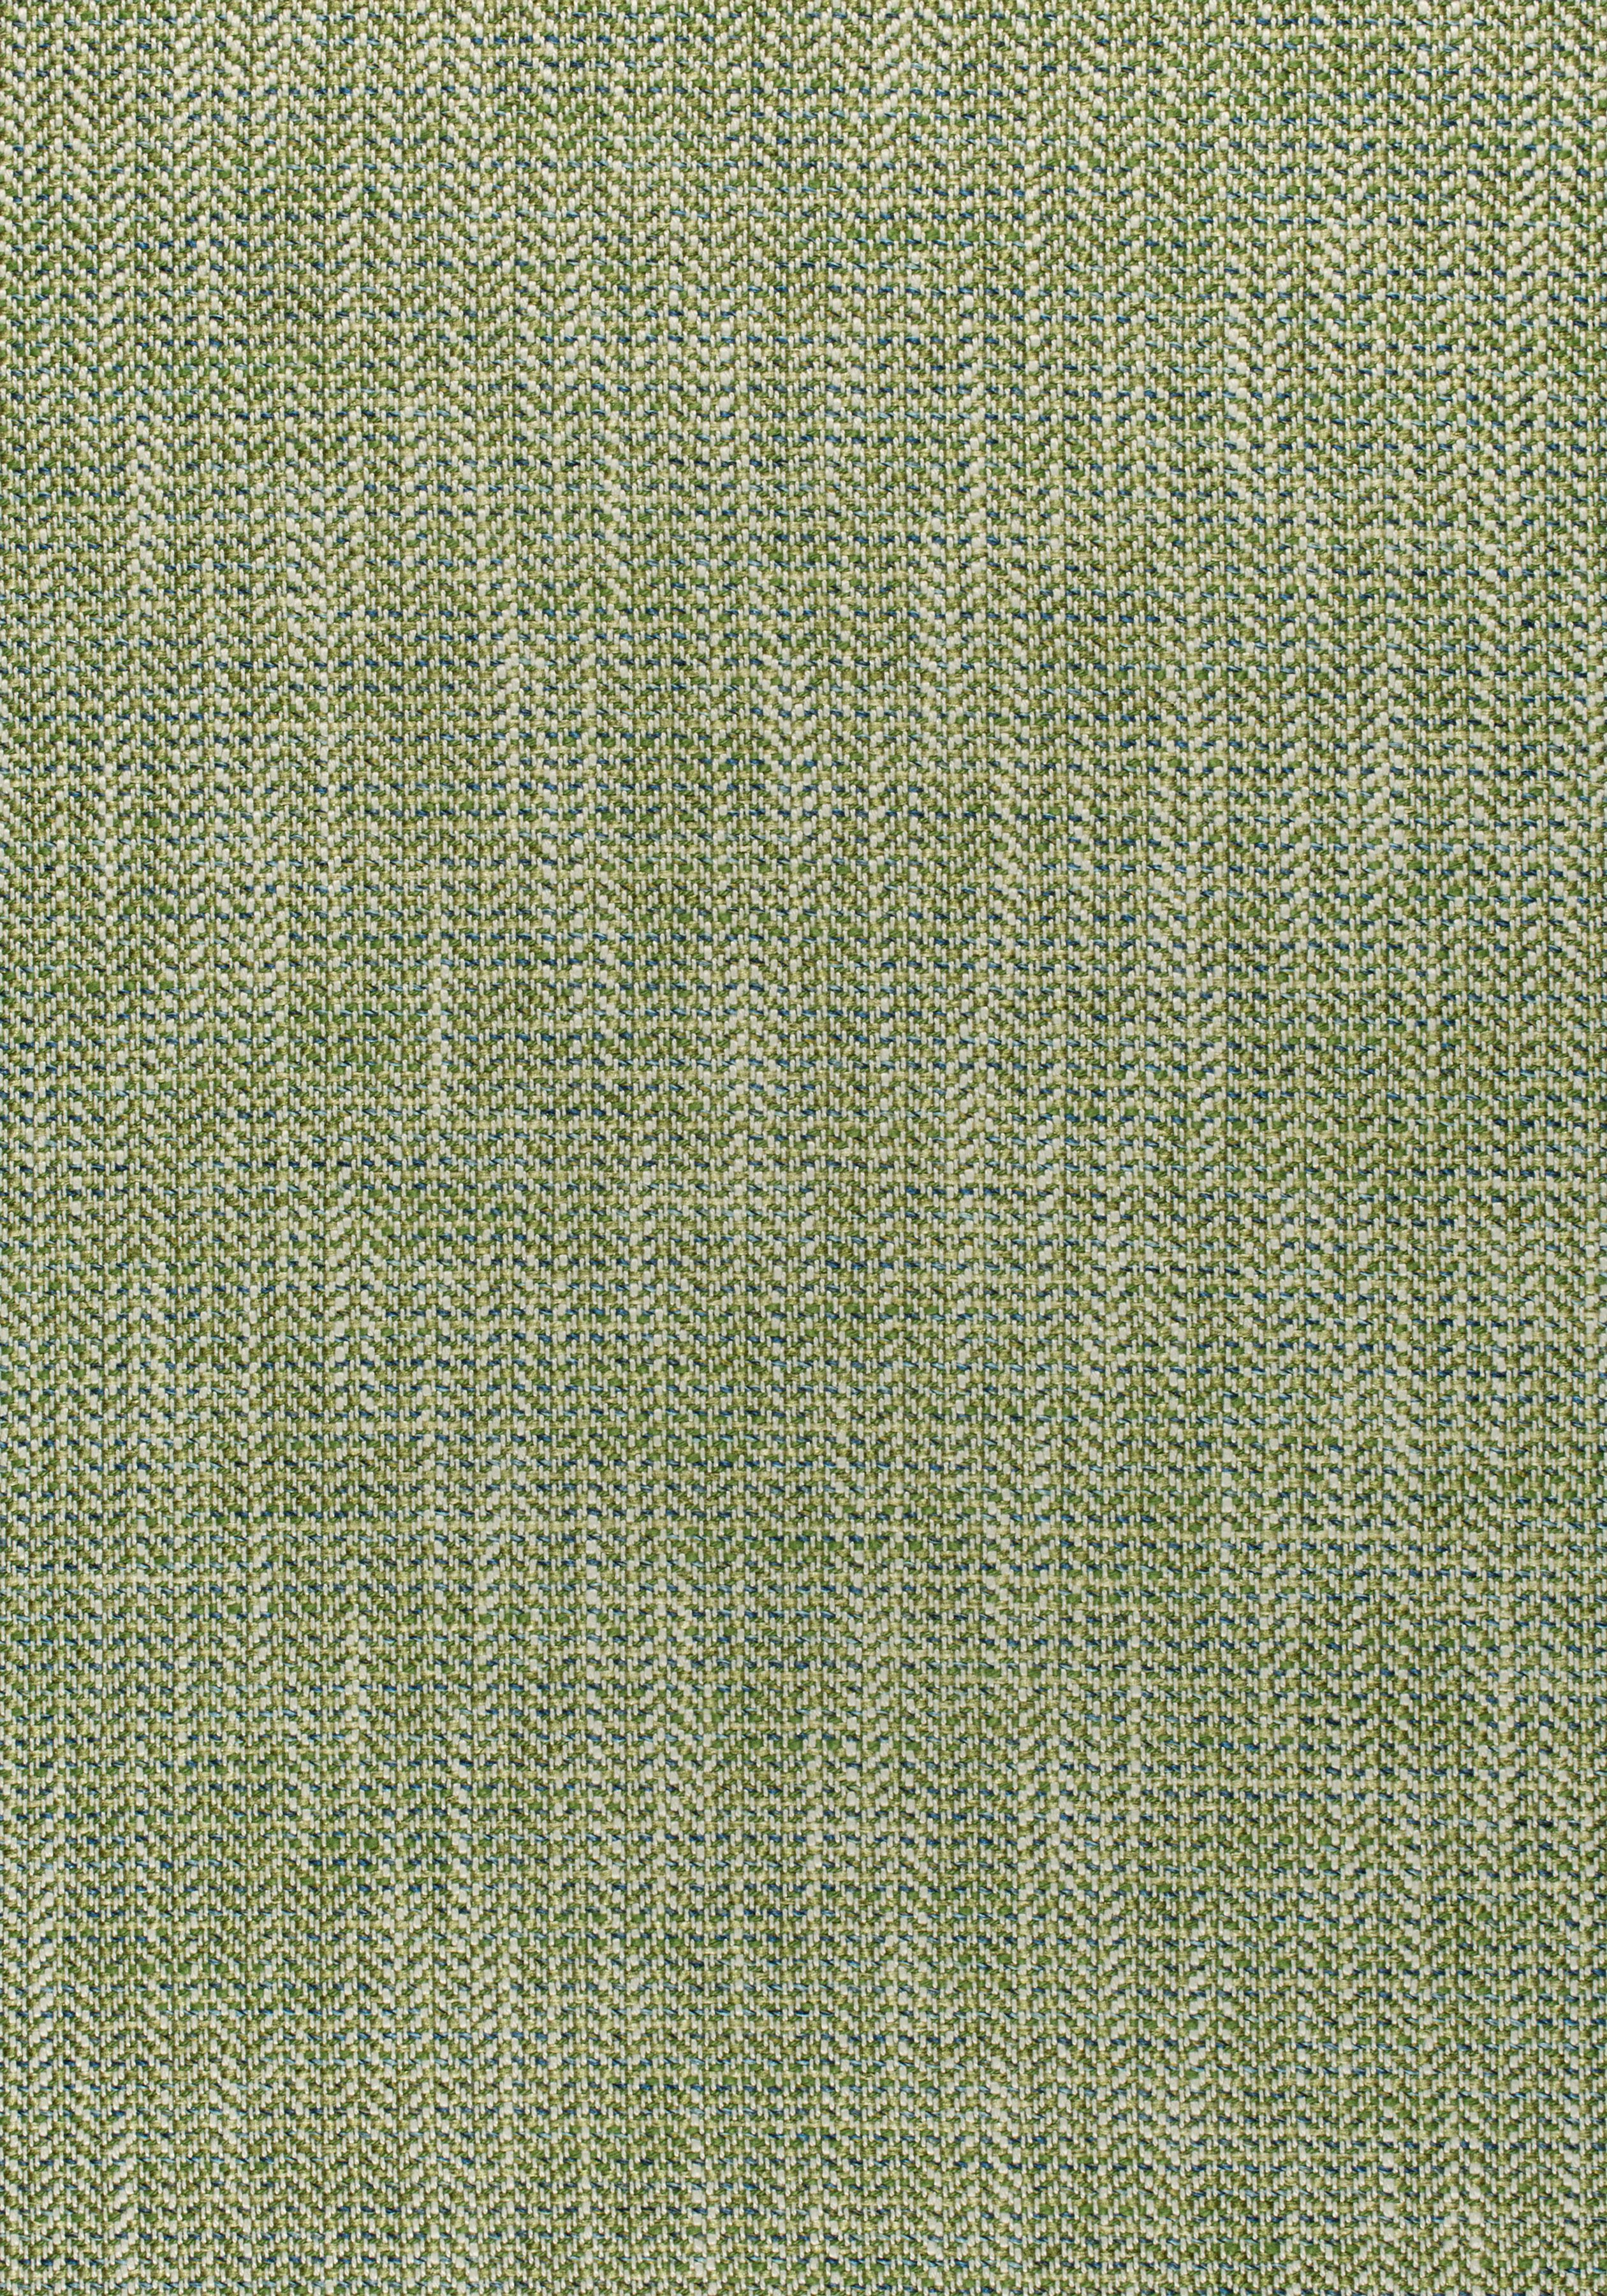 Ashbourne Tweed Grass W80612 Collection Pinnacle From Thibaut Rich Color Palette Textured Wallpaper Fabric Decor